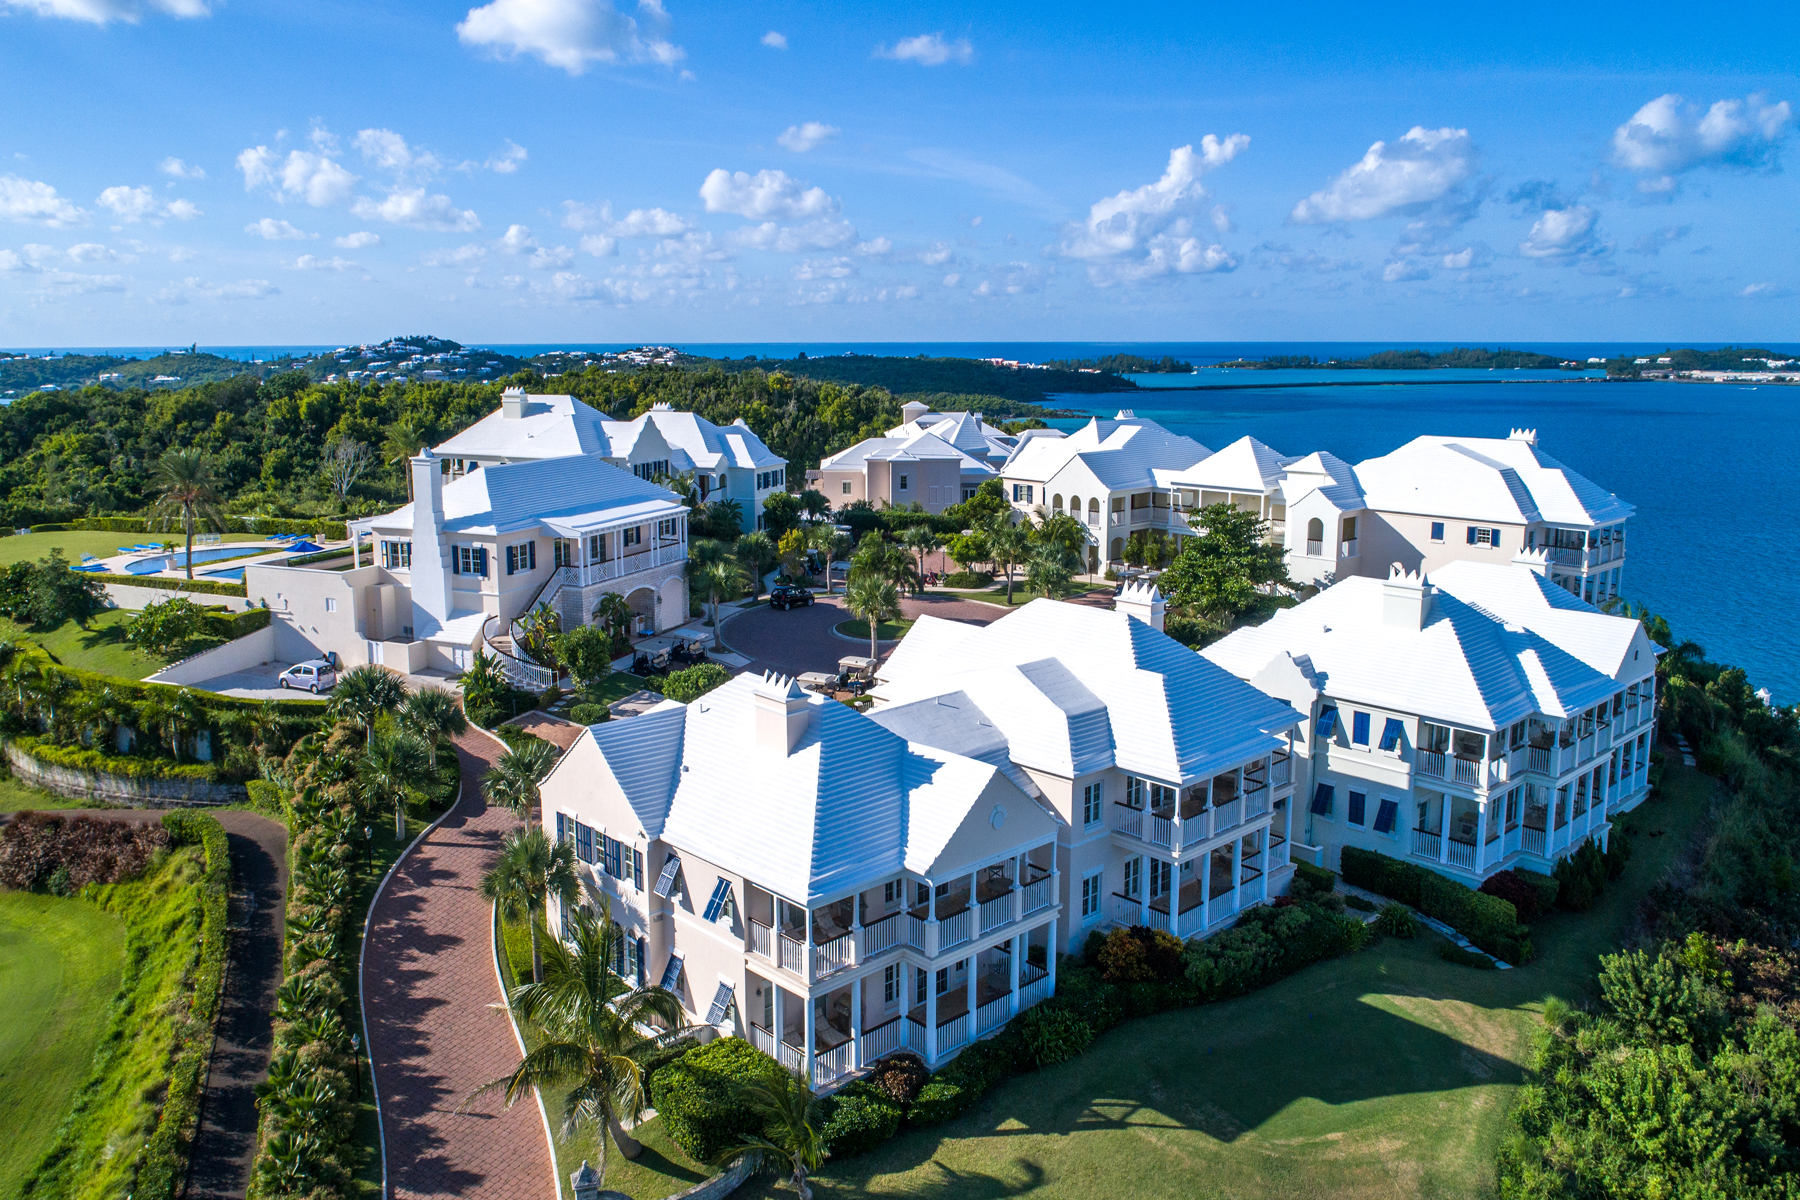 Fractional Ownership Properties for Sale at Tucker's Point Golf Villa - 4 Bedroom St Georges Parish, Bermuda Bermuda